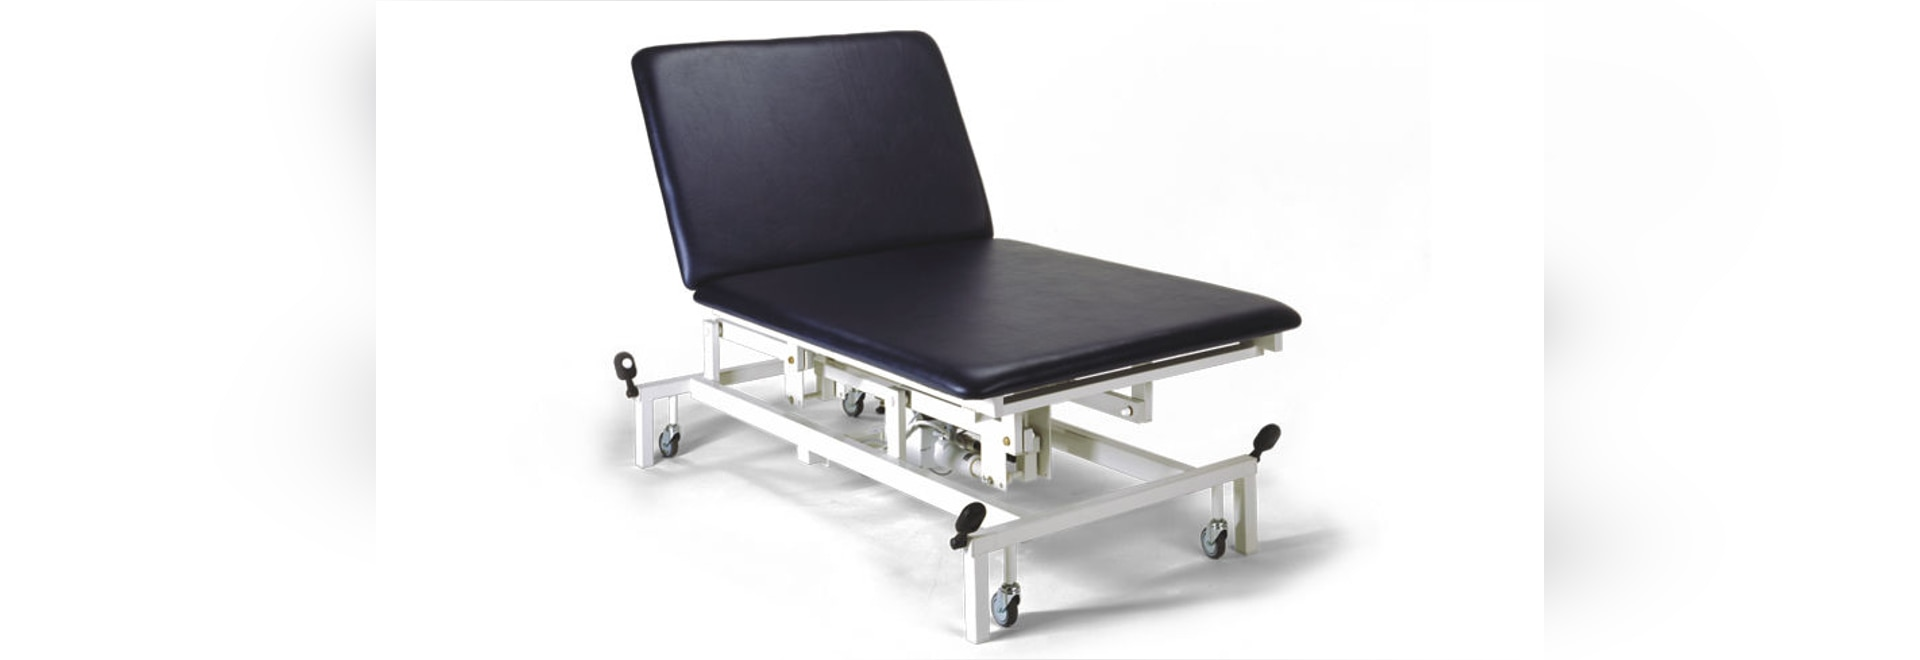 Akron™ rehabilitation and physiotherapy couches - Covers every aspect of rehabilitation